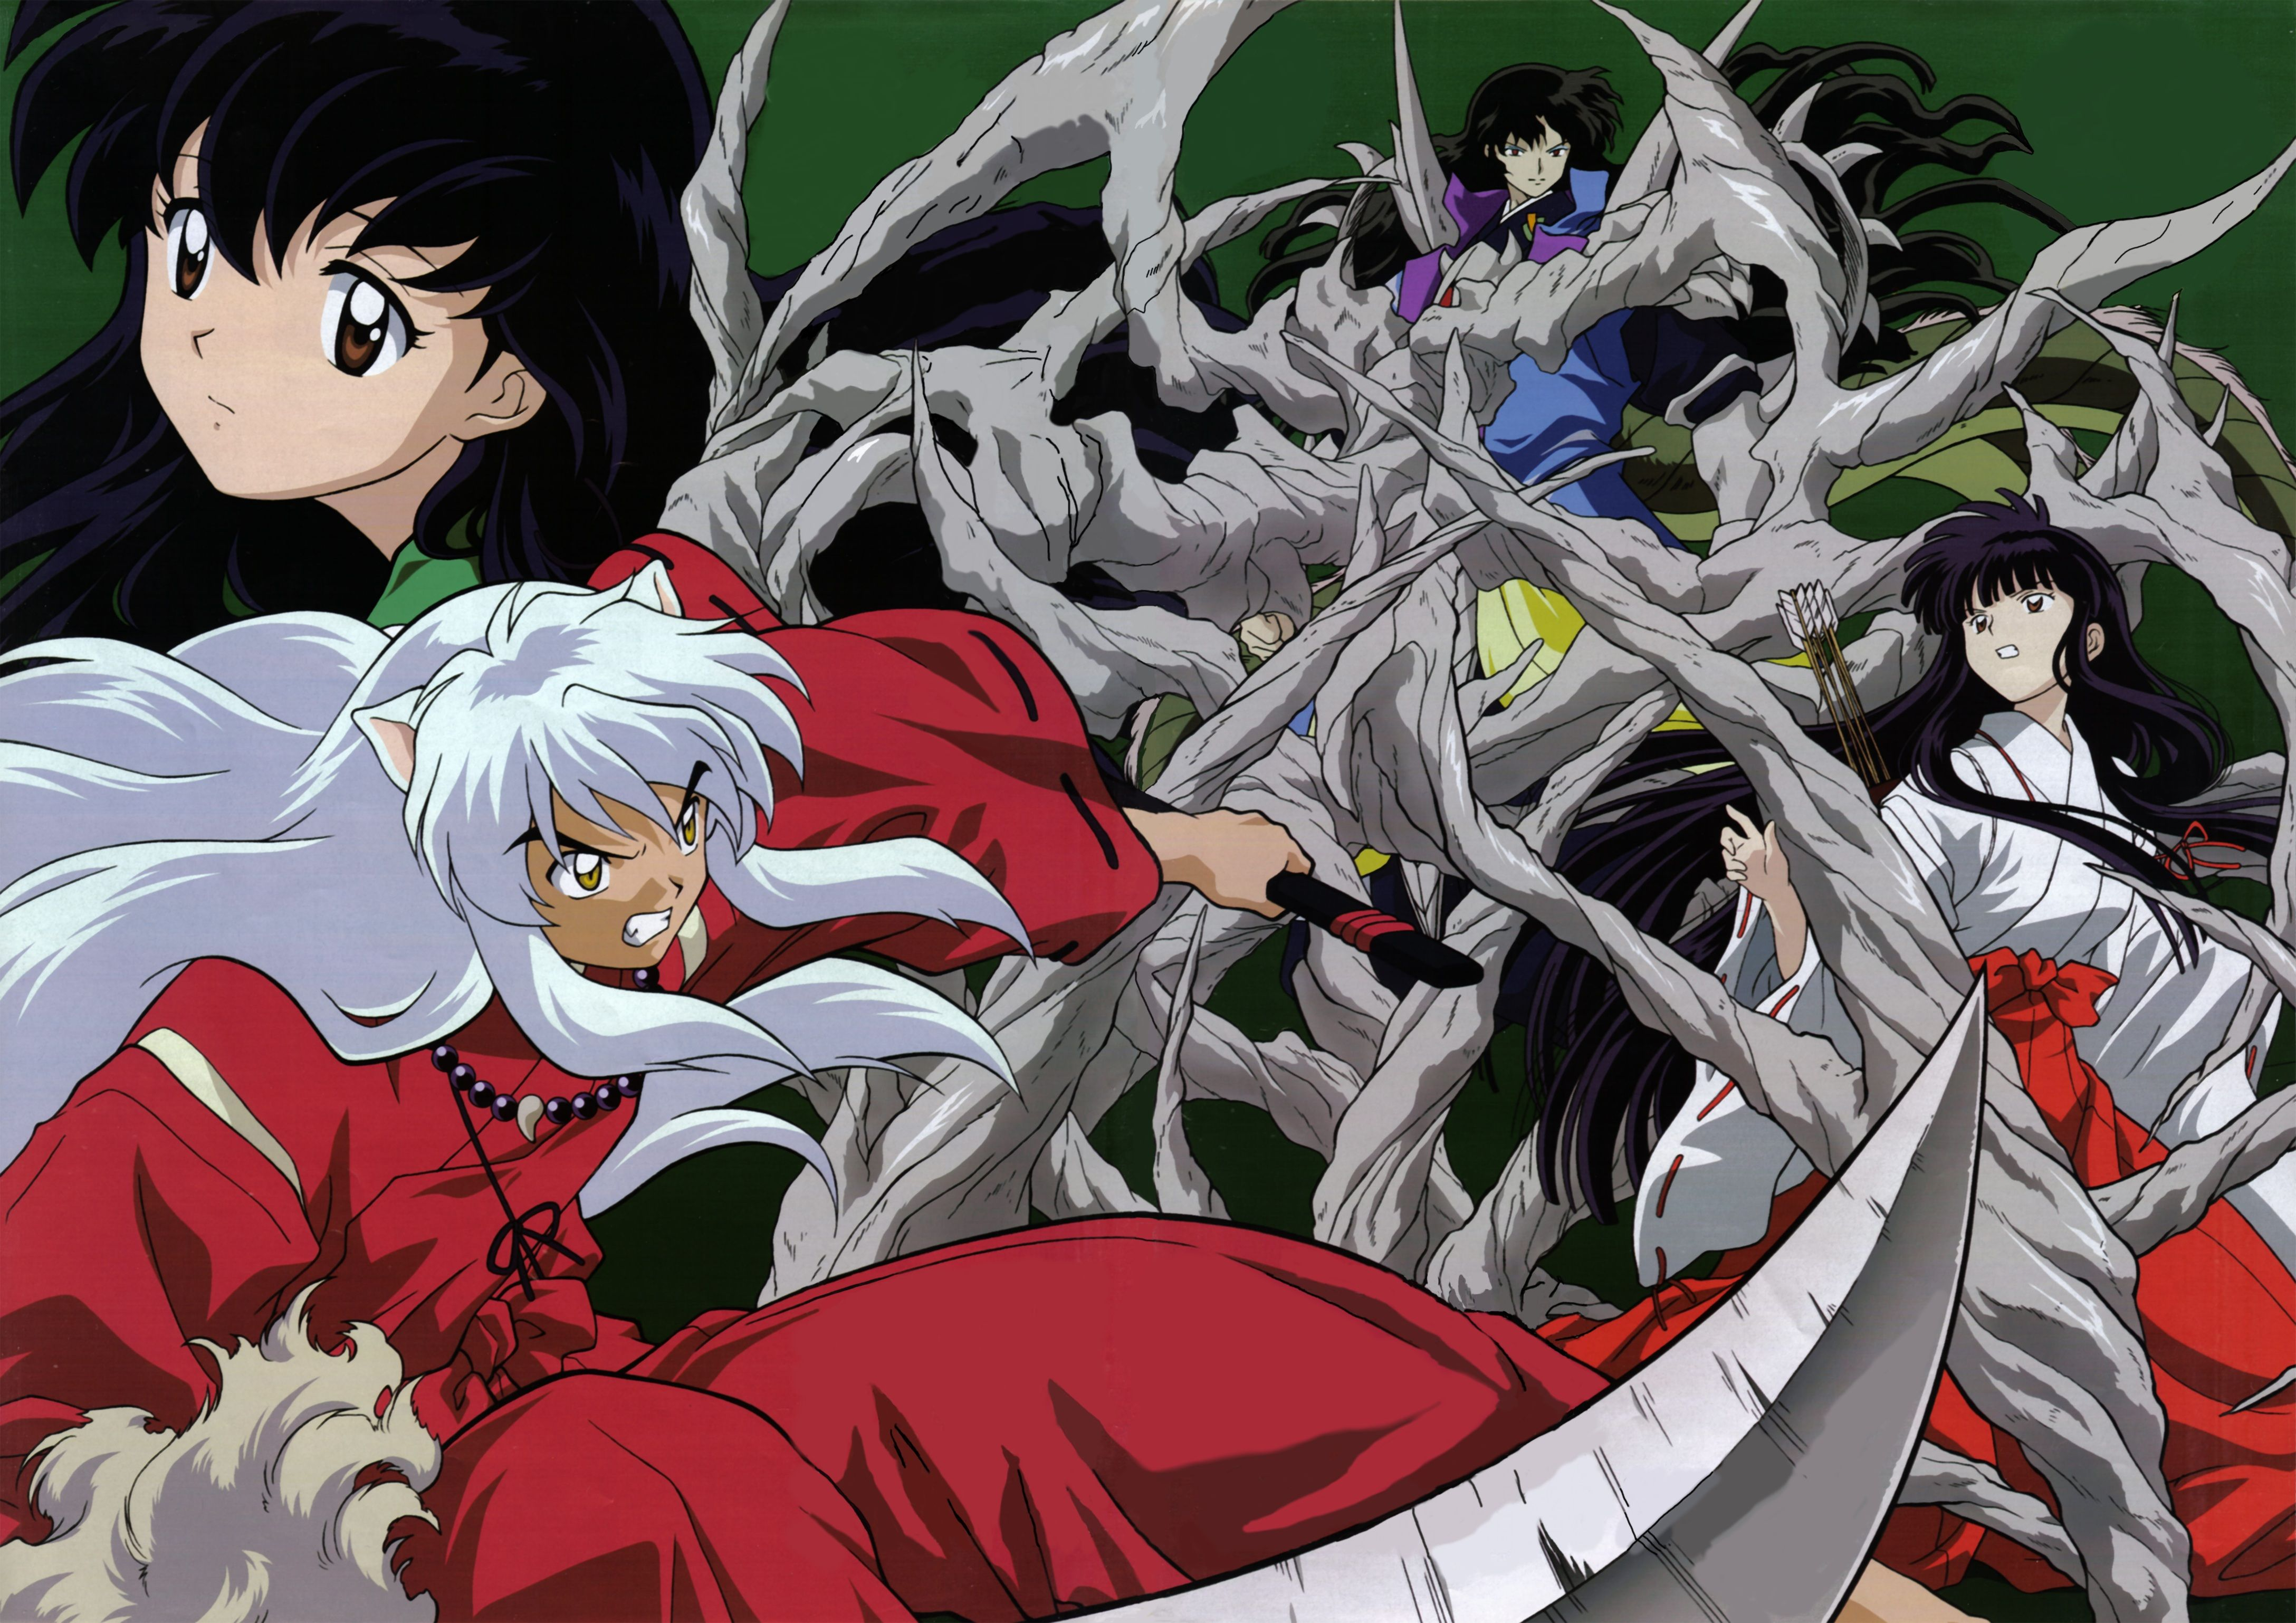 62 Inuyasha Hd Wallpapers Backgrounds Wallpaper Abyss Anime Inuyasha Anime Wallpaper